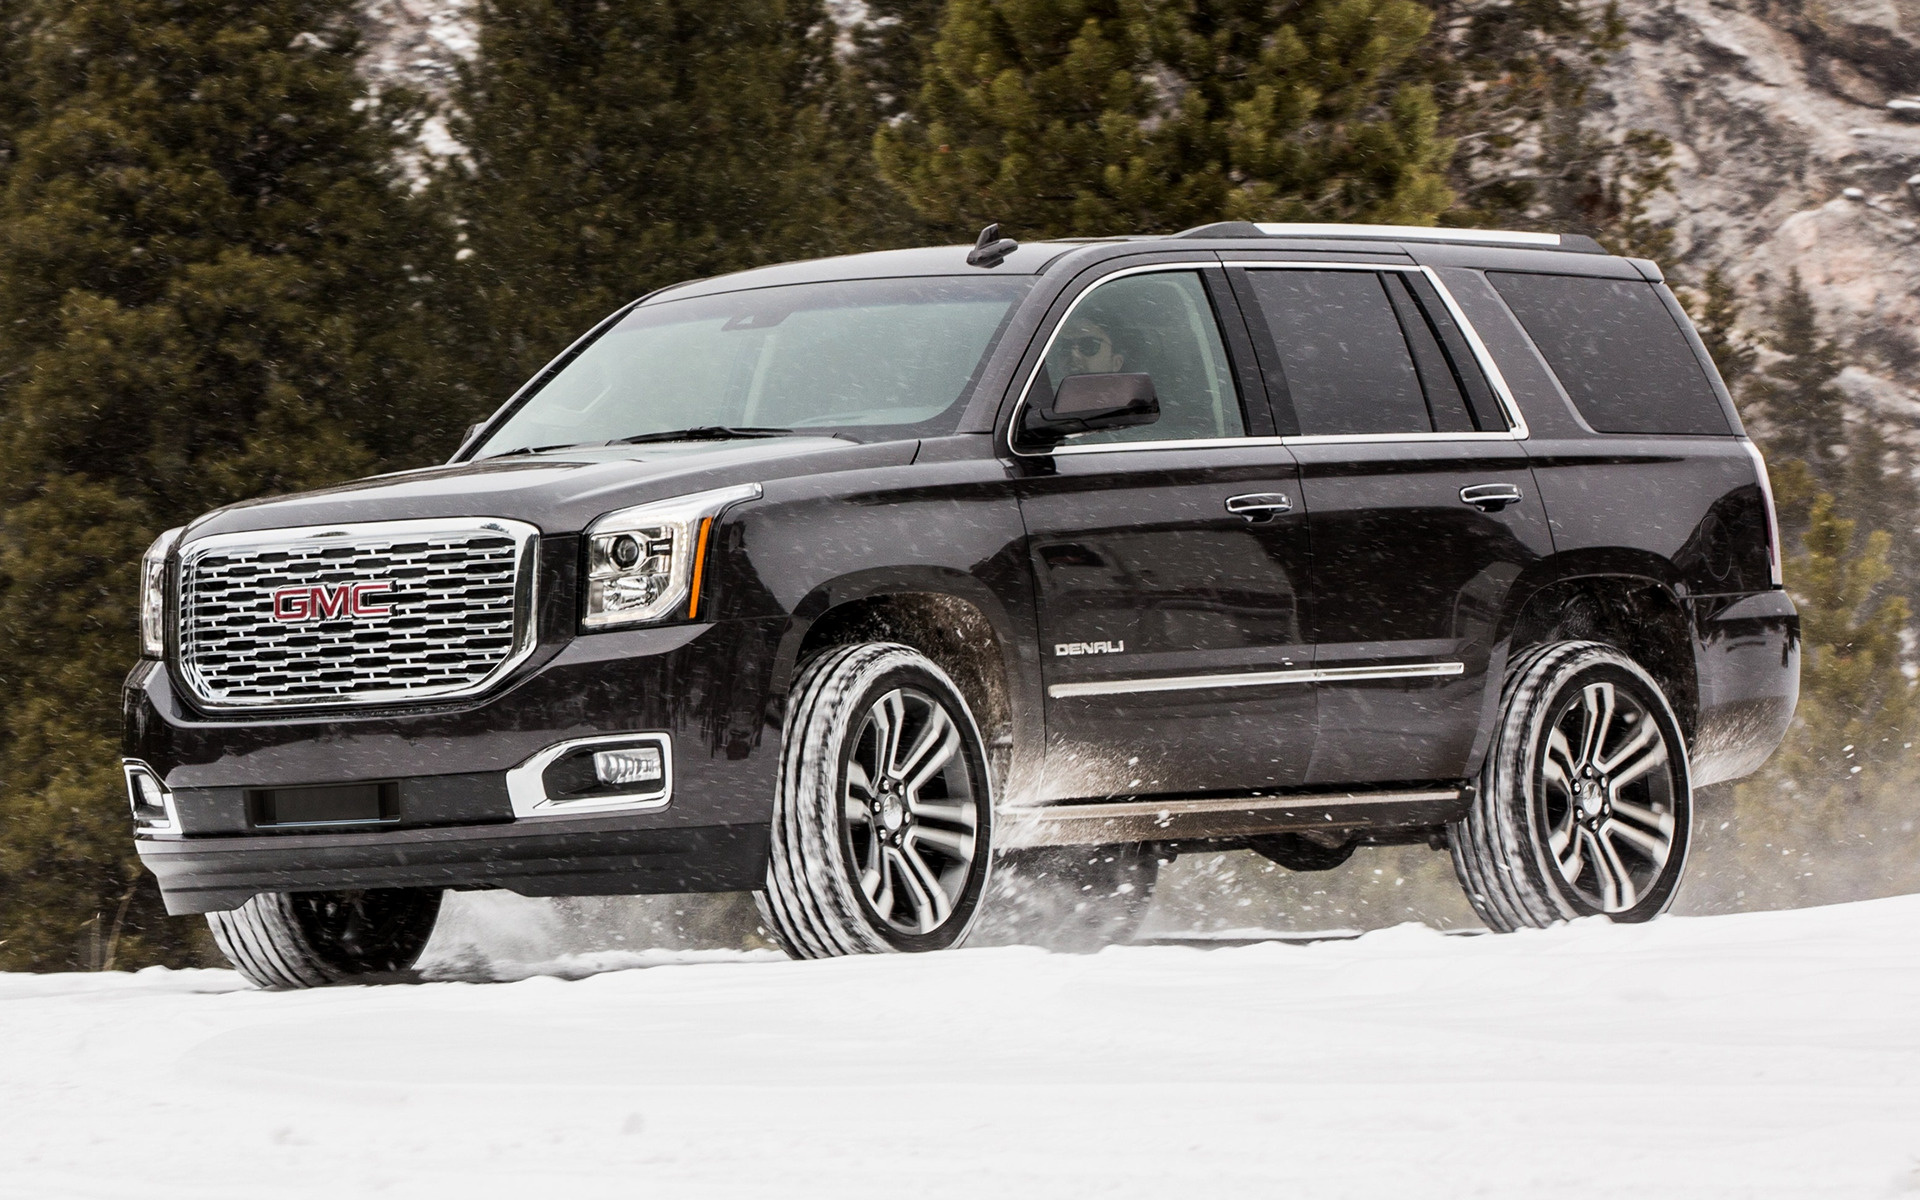 2014 Yukon Denali >> GMC Yukon Denali (2018) Wallpapers and HD Images - Car Pixel